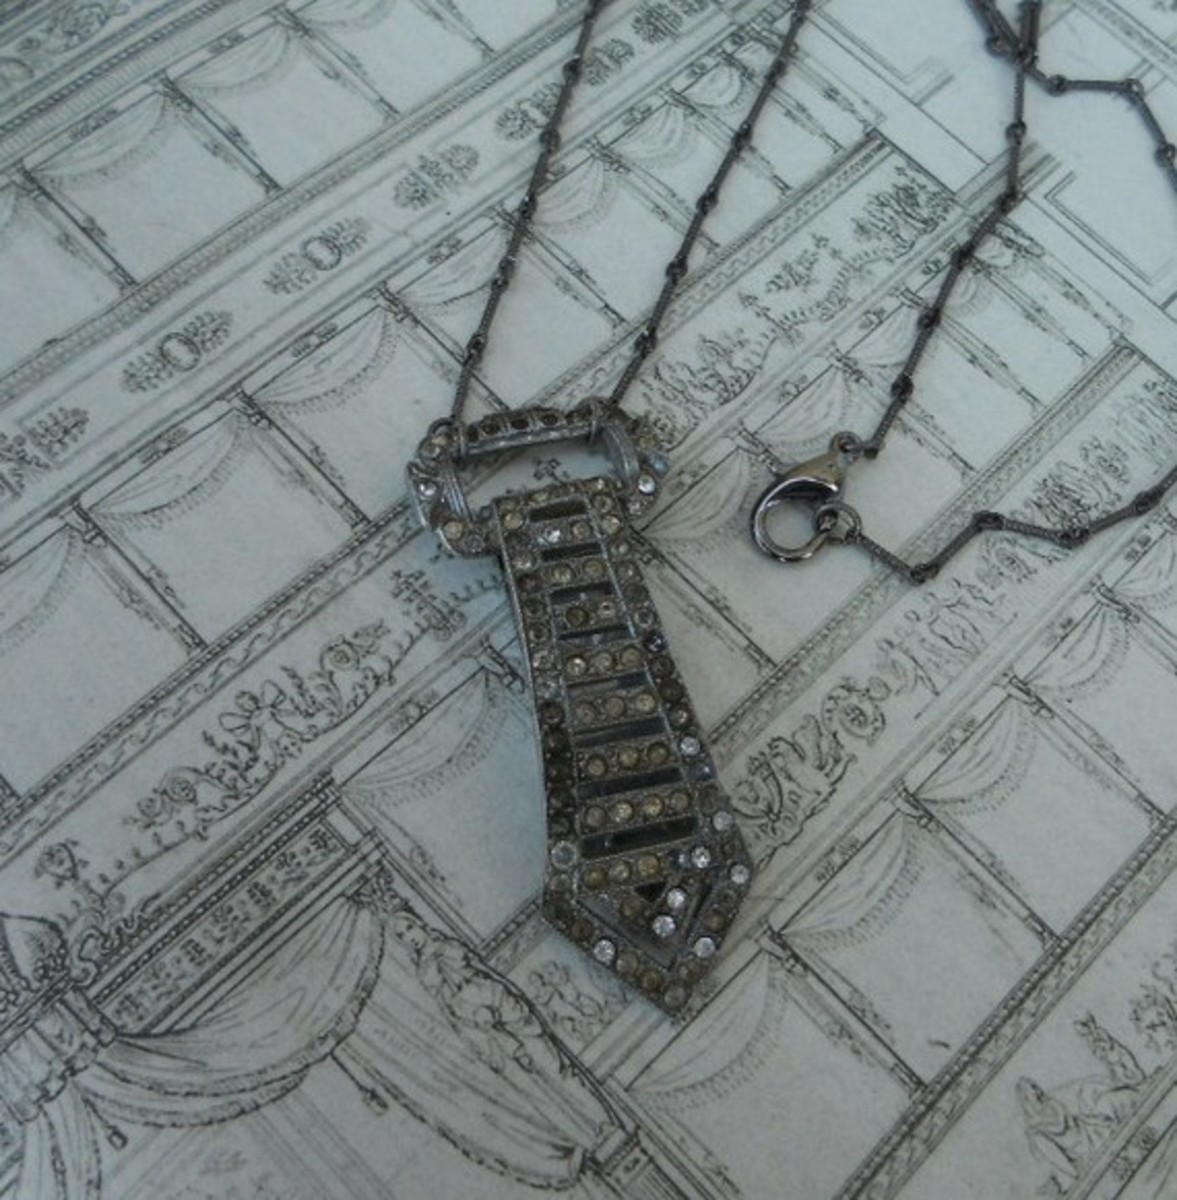 Chivalry Isn't Dead Vintage Tie Necklace for sale on etsy.com